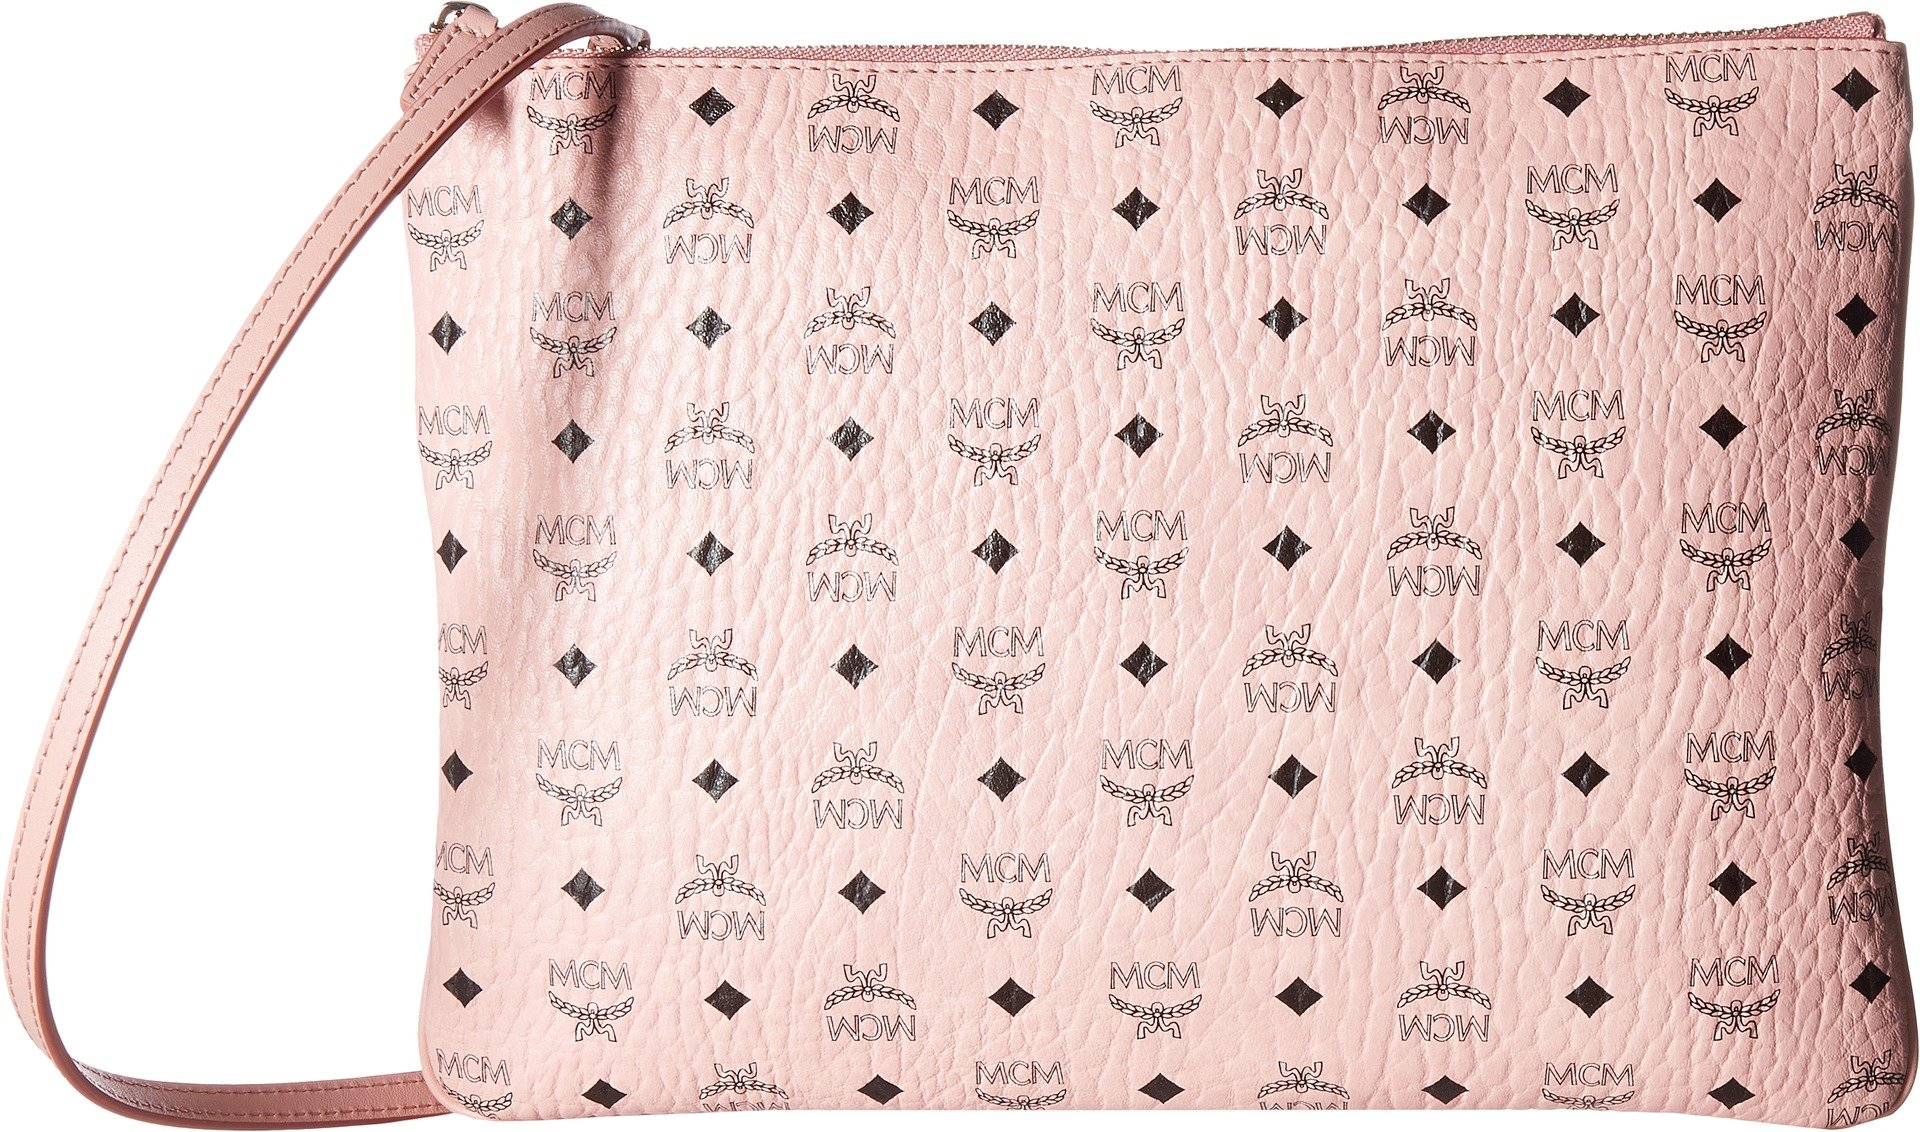 MCM Women's Visetos Medium Pouch, Soft Pink, One Size by MCM